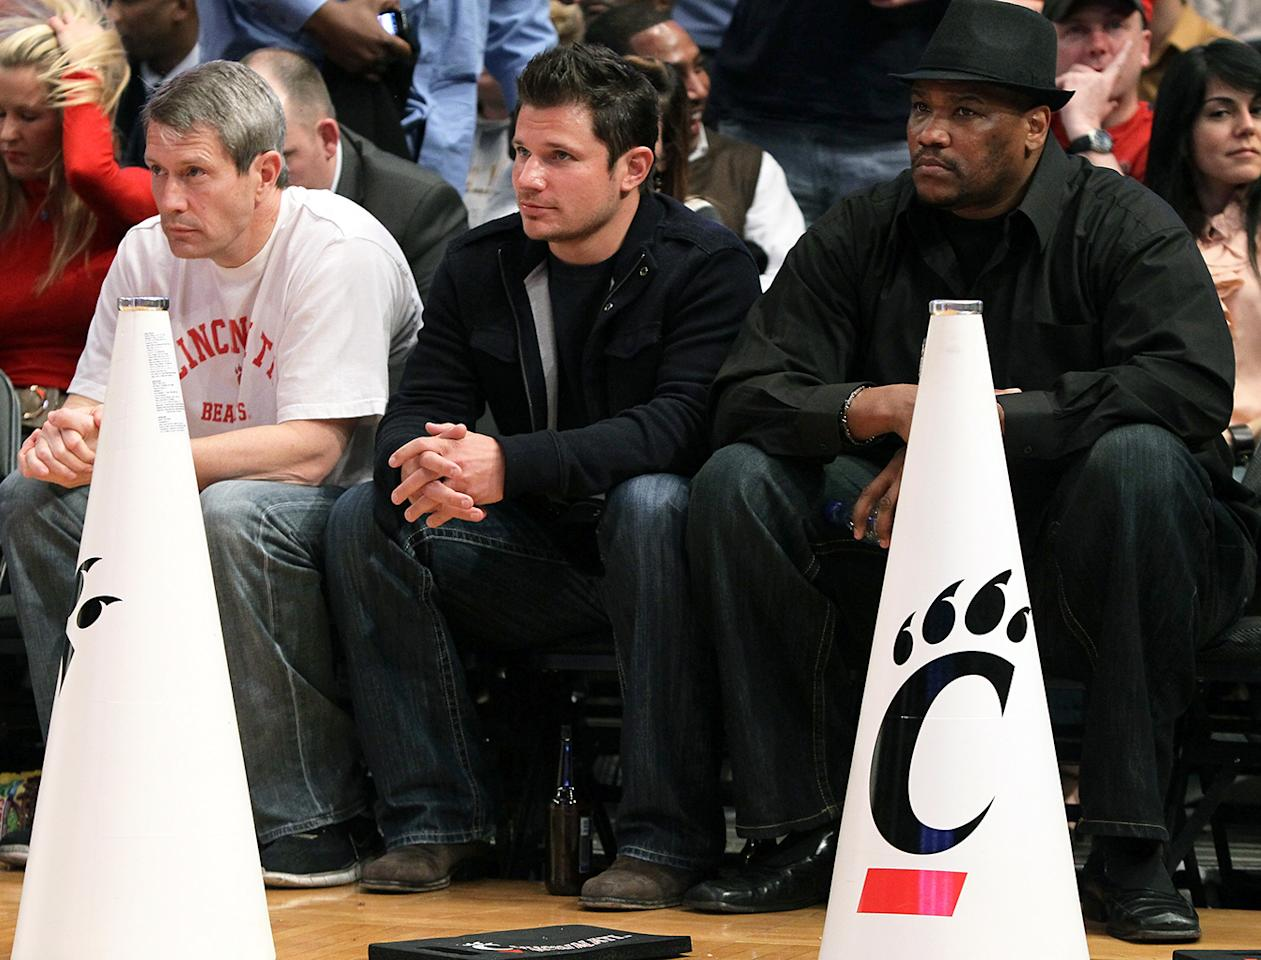 Nick Lachey attends the game between the Louisville Cardinals and the Cincinnati Bearcats during the second round of 2010 NCAA Big East Tournament at Madison Square Garden on March 10, 2010 in New York City.  (Photo by Jim McIsaac/Getty Images)